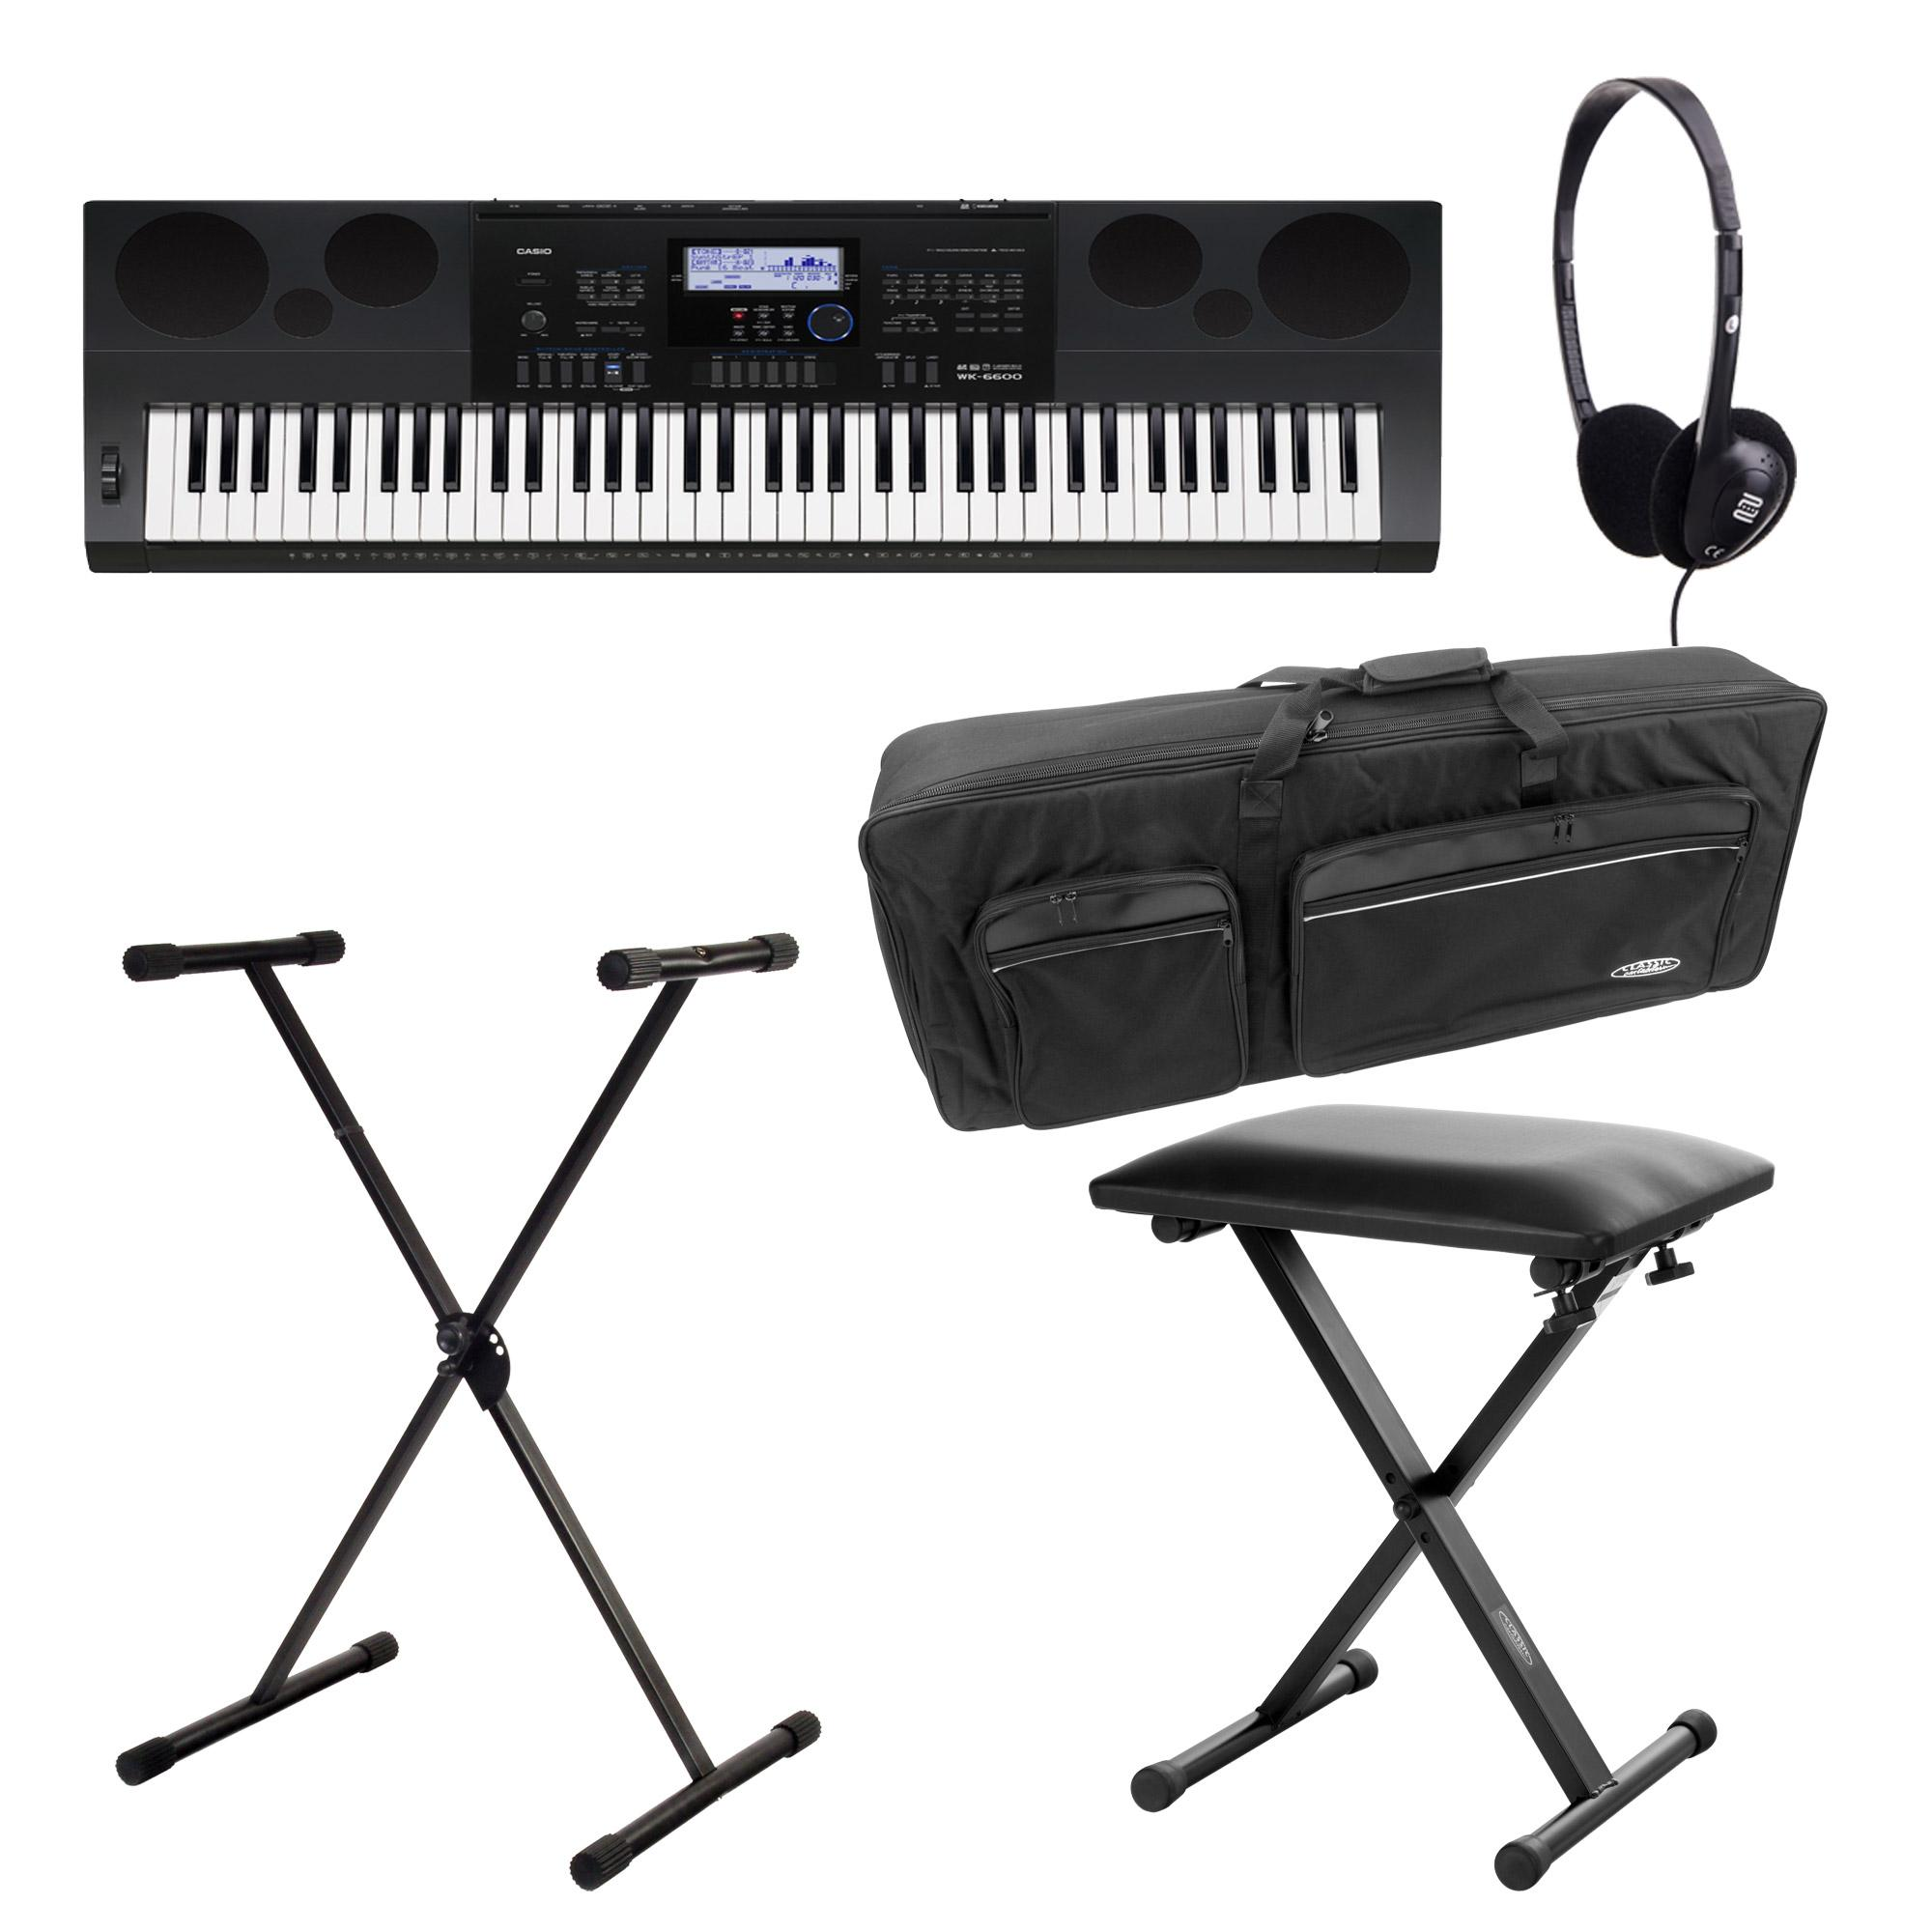 SET Casio WK 7600 Keyboard Deluxe